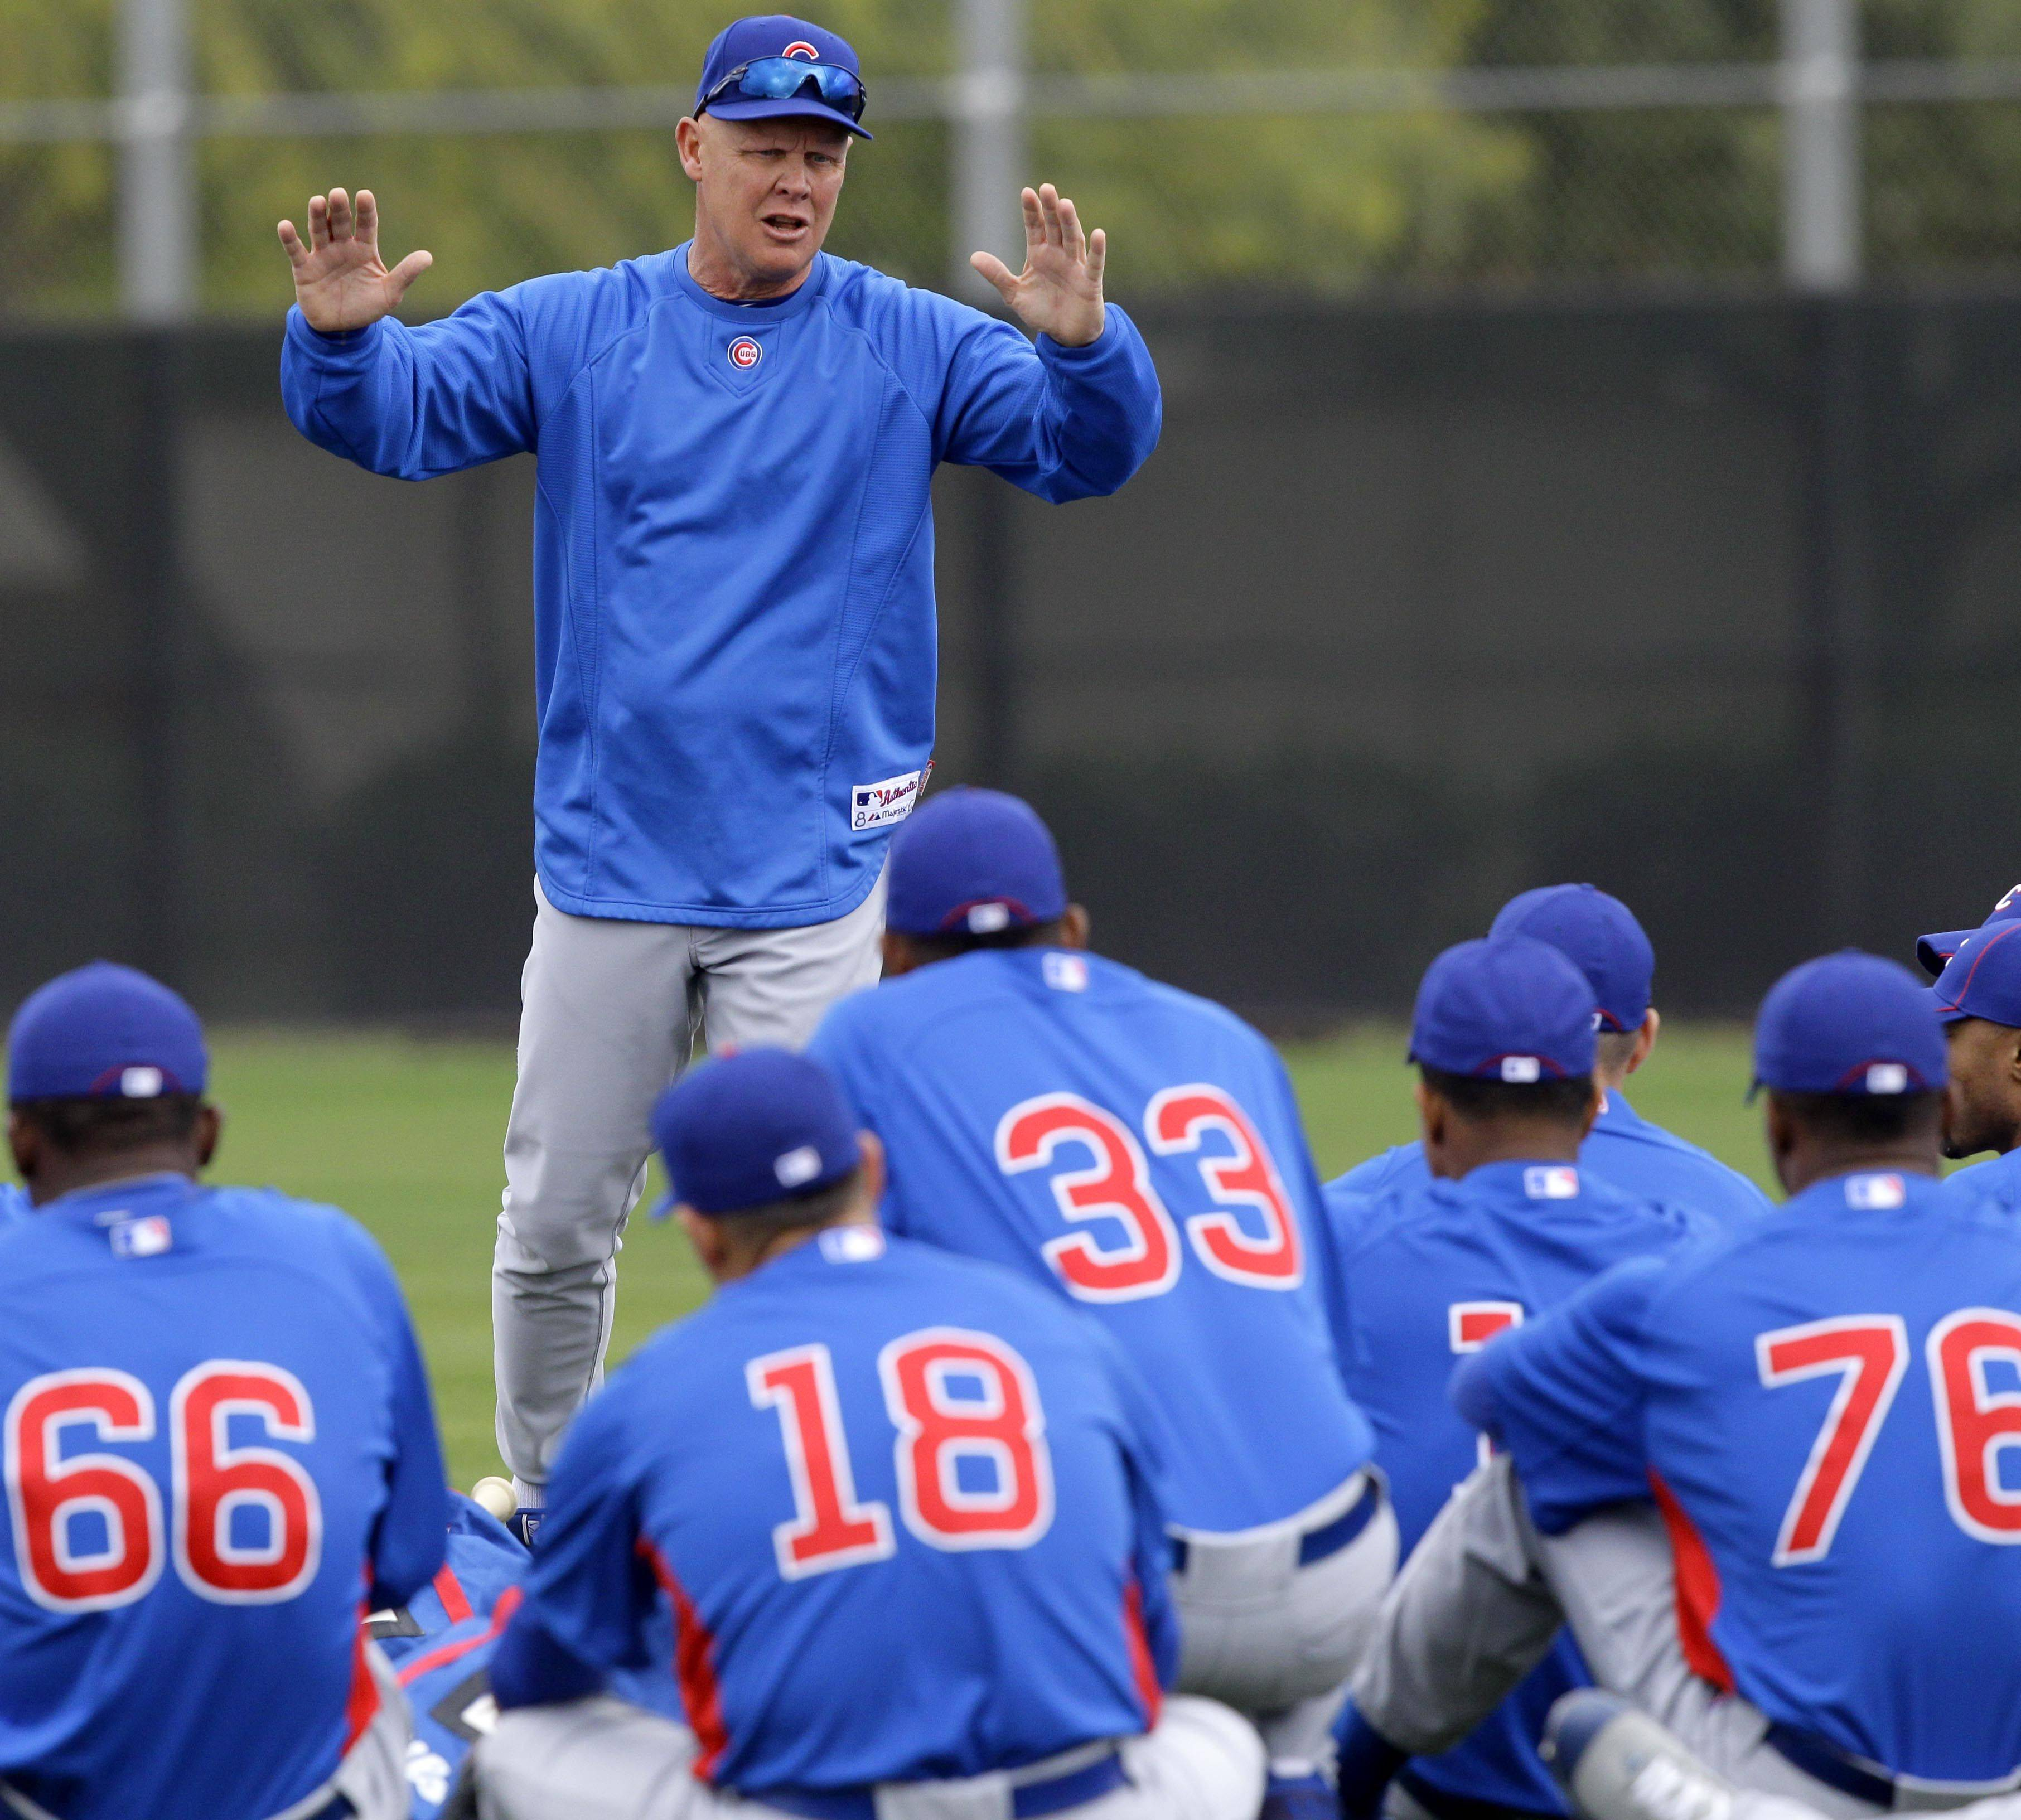 Cubs' skipper shares lessons in life